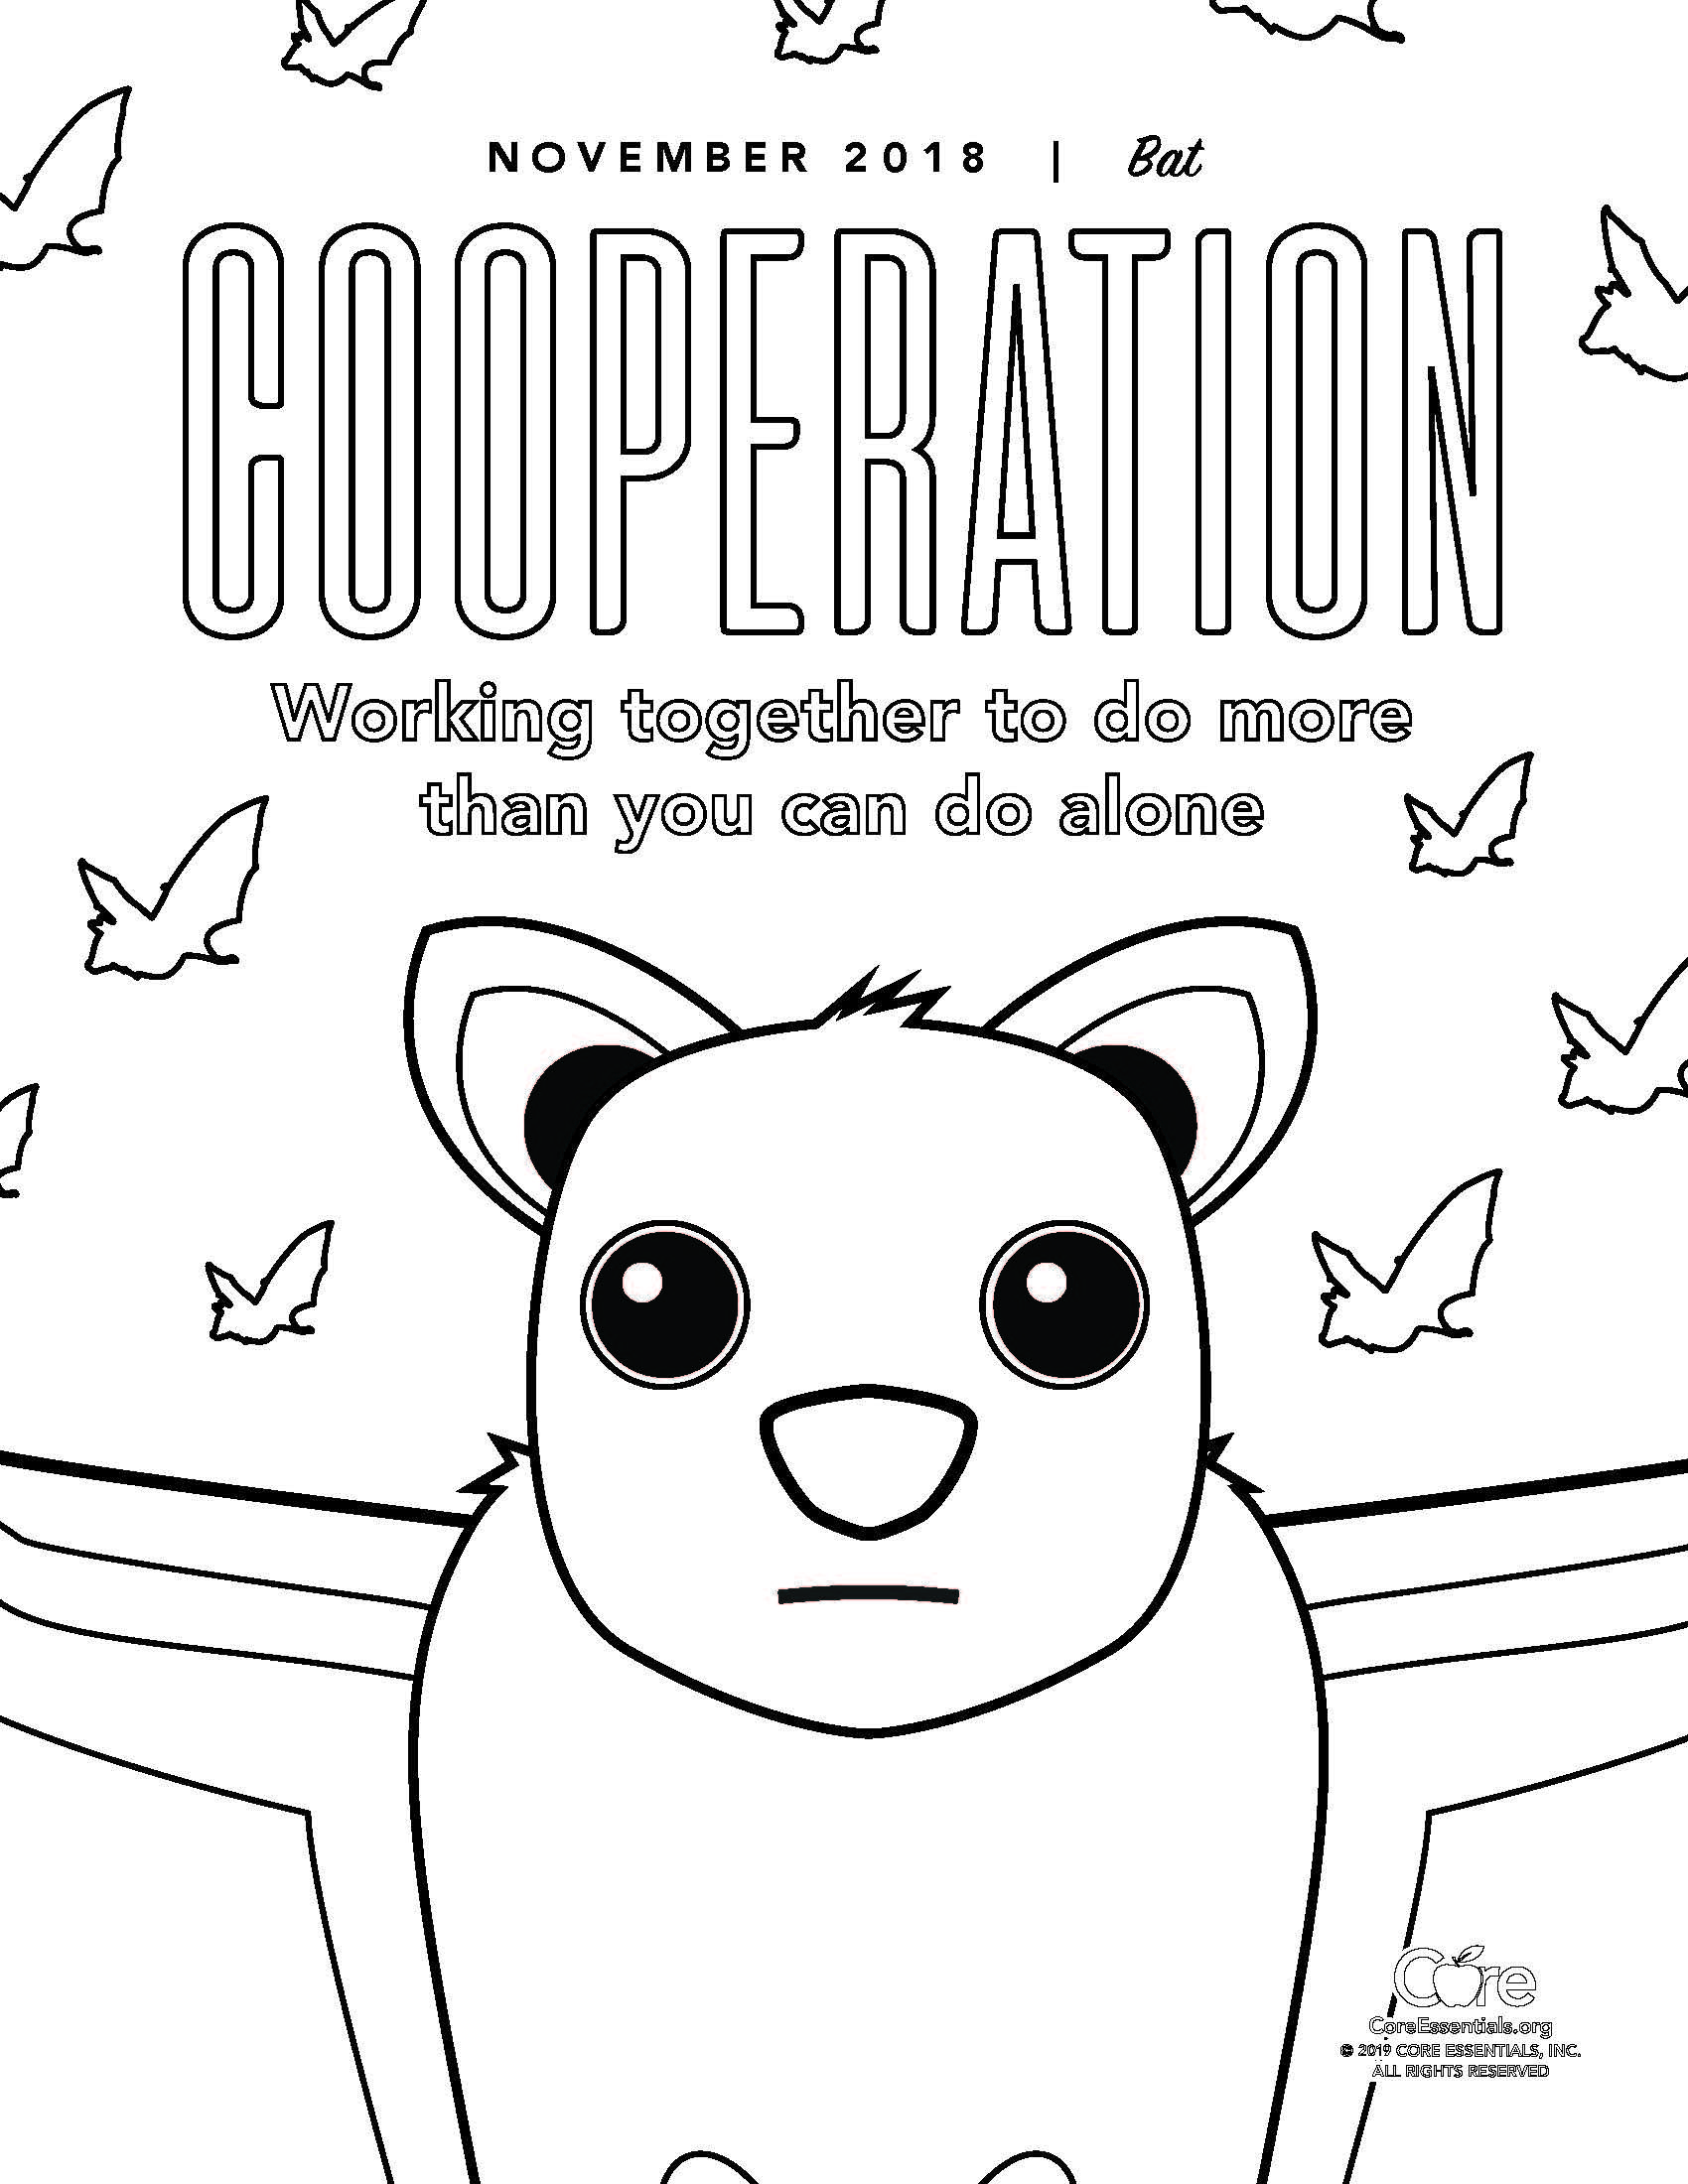 Chicken And Friends Cooperation Coloring Page Chicken Little Car